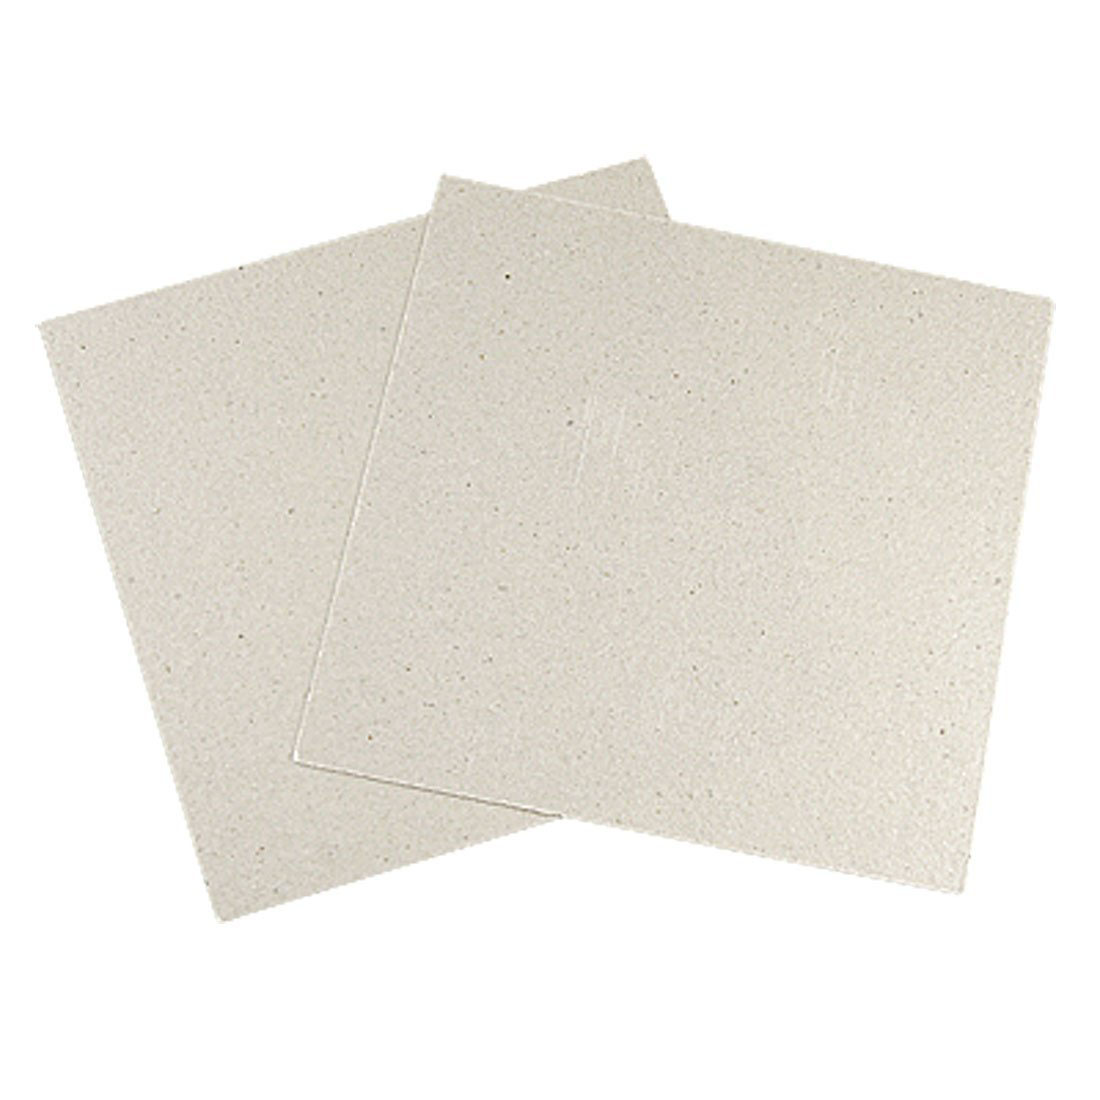 2 Pcs Microwave Oven Repairing Part Mica Plates Sheets 4.8 x 4.8 120x120mm/4.8*4.8 inch Microwave oven parts2 Pcs Microwave Oven Repairing Part Mica Plates Sheets 4.8 x 4.8 120x120mm/4.8*4.8 inch Microwave oven parts